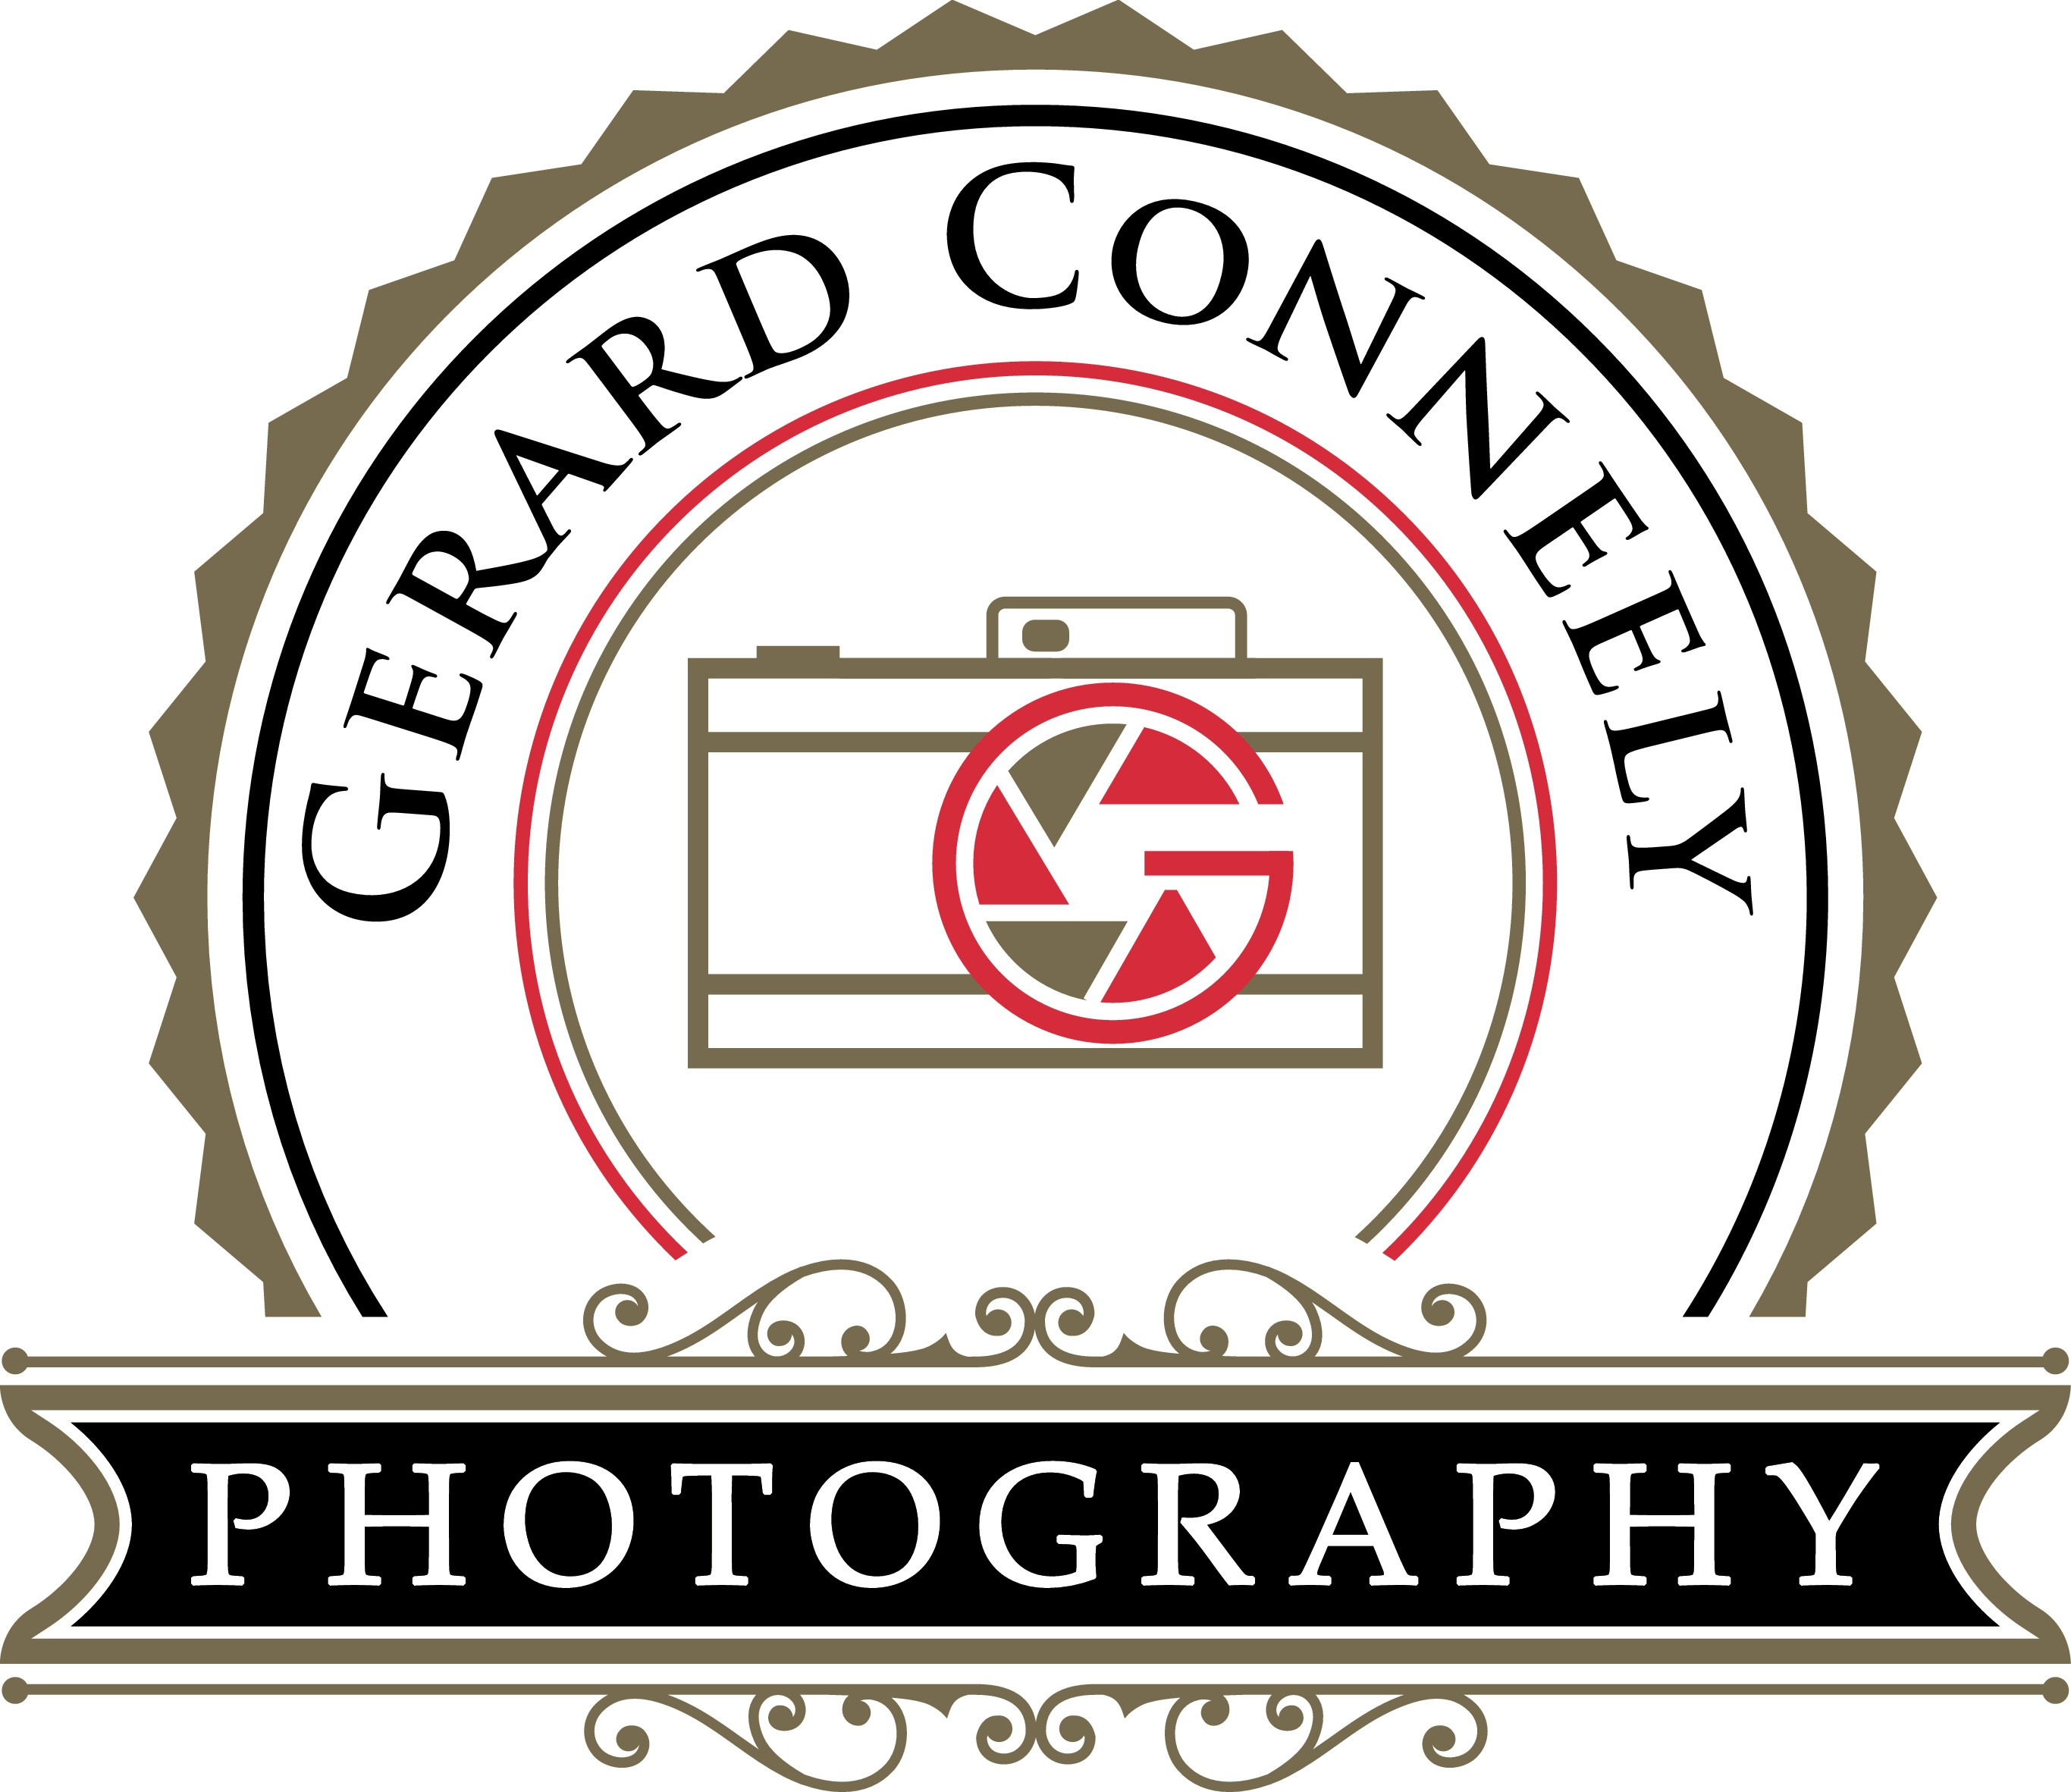 I need a Luxury Photography Logo with a classic sytle